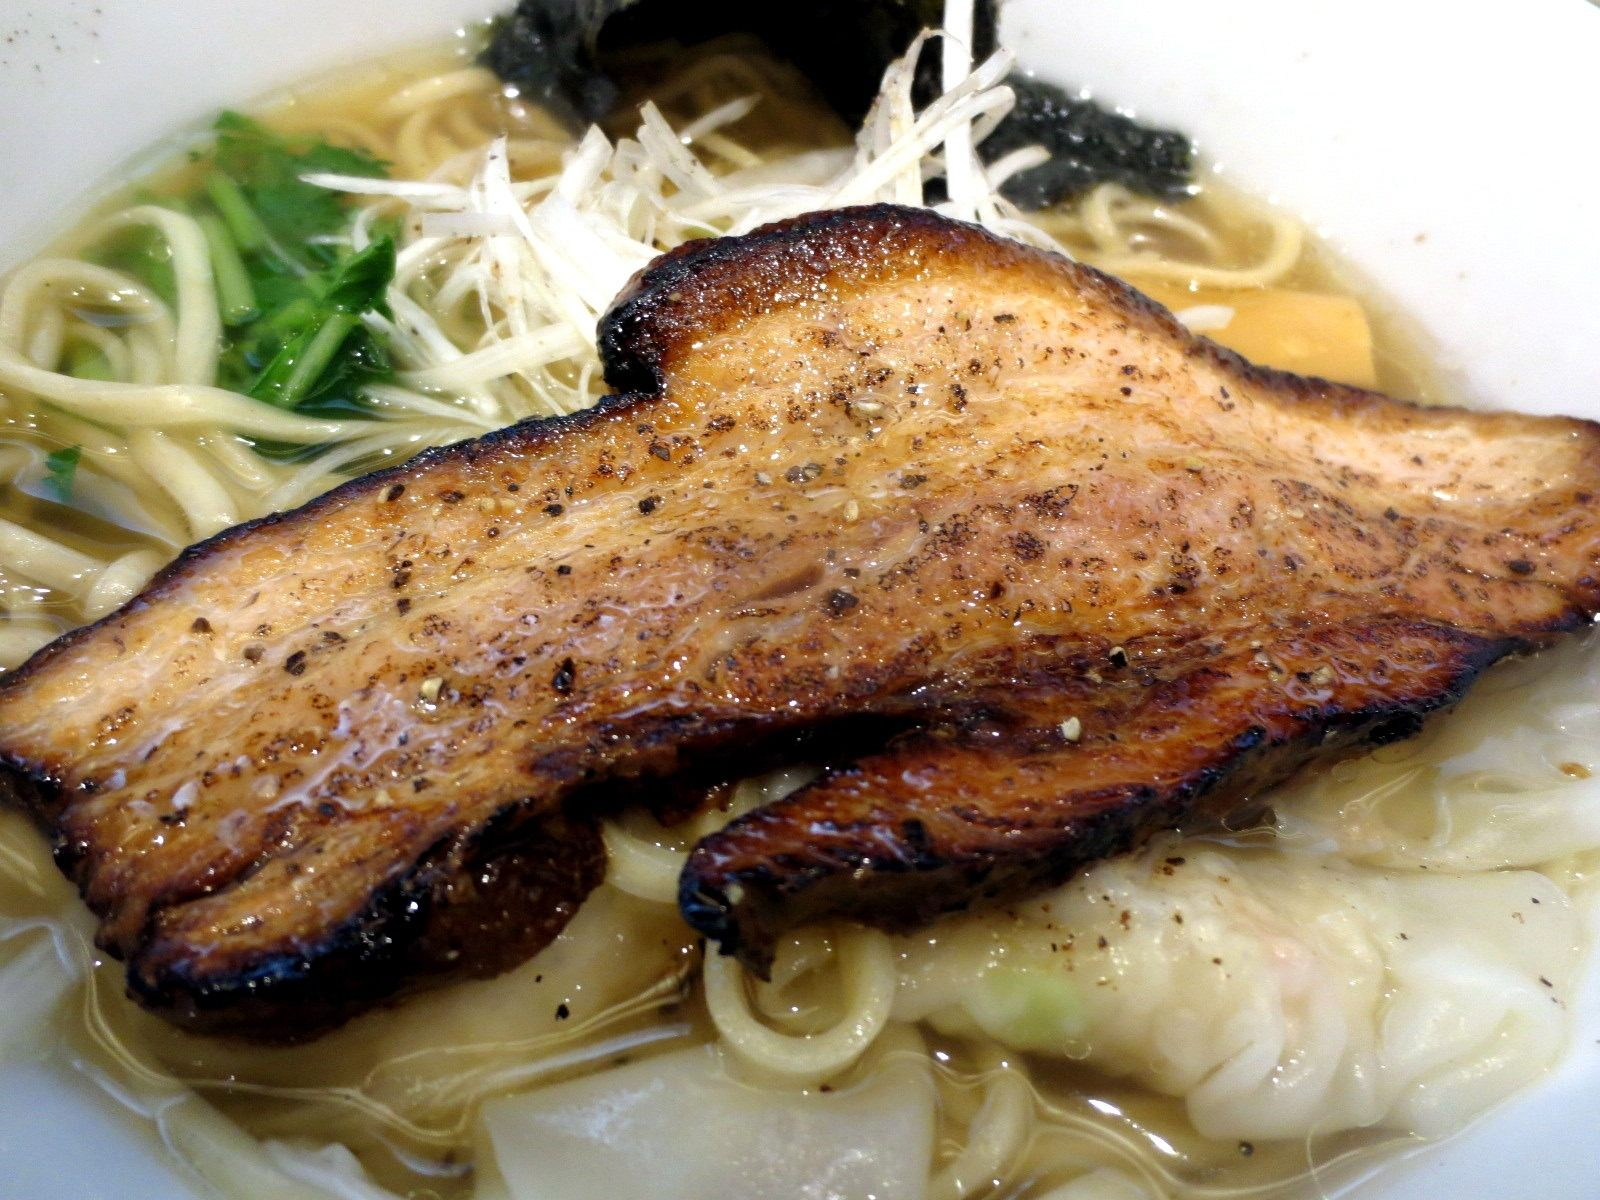 The large, flame-broiled Char sui